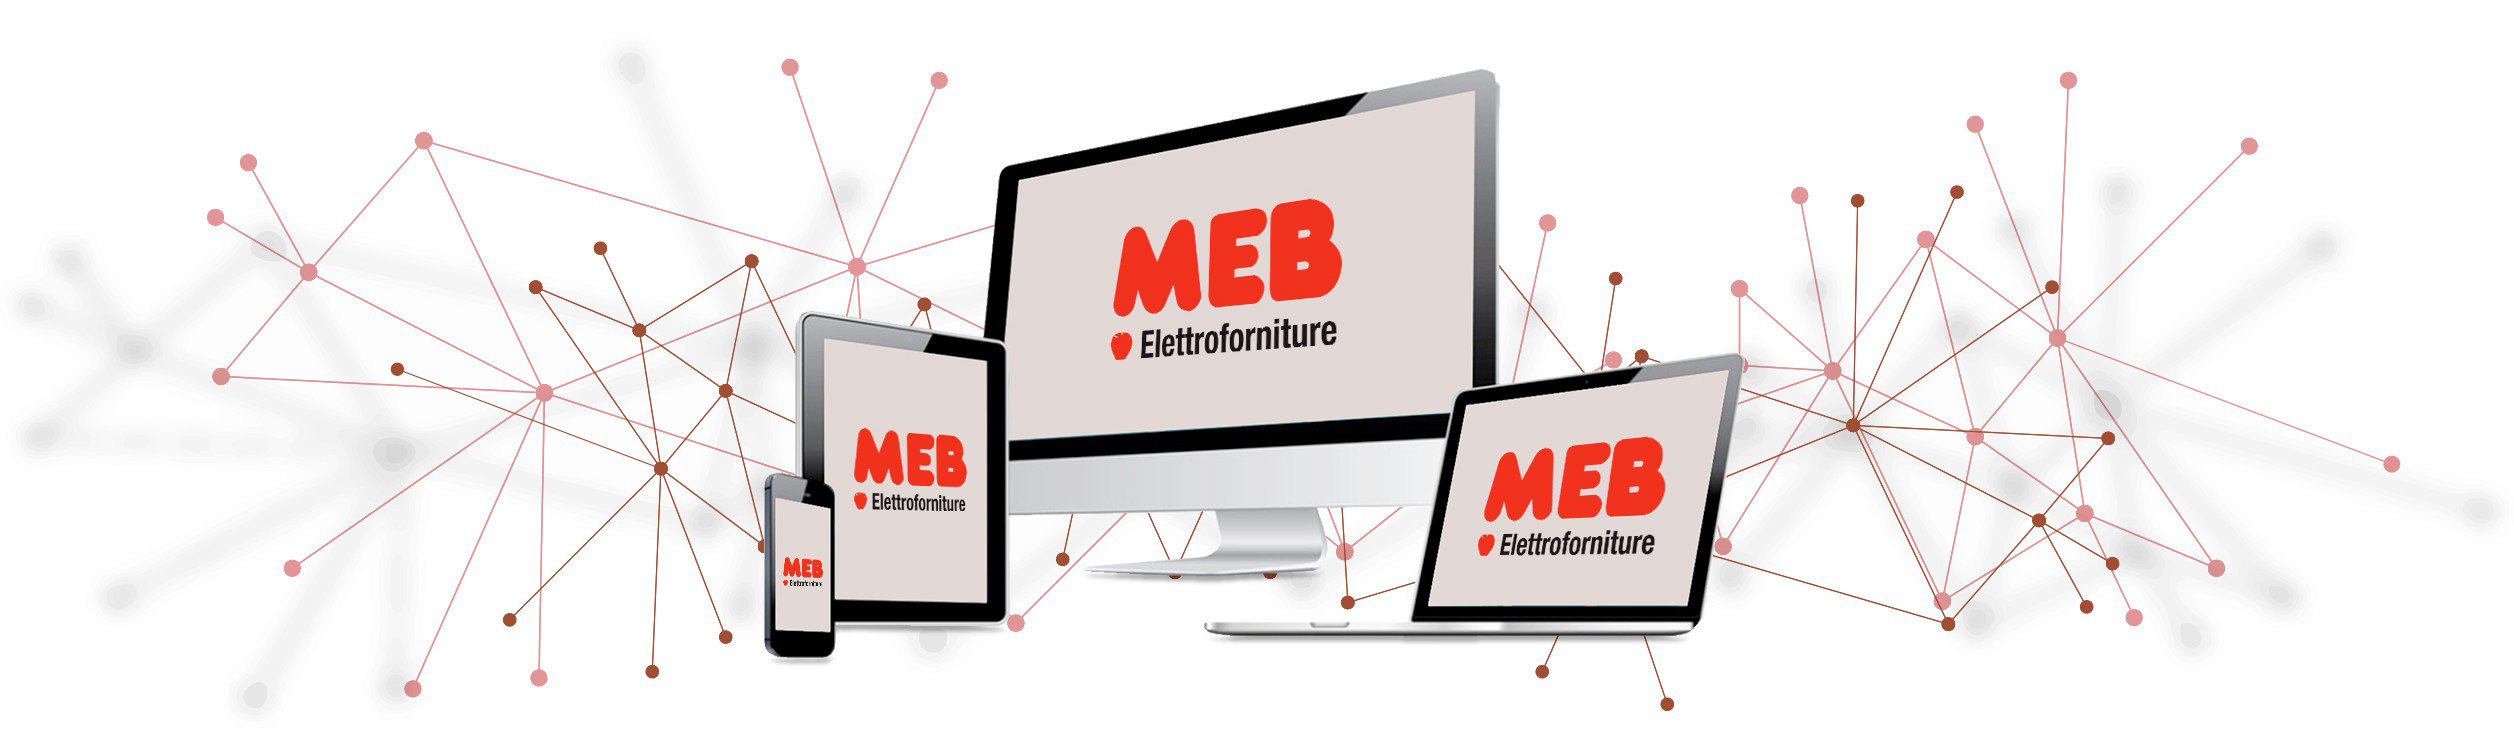 mebcommerce